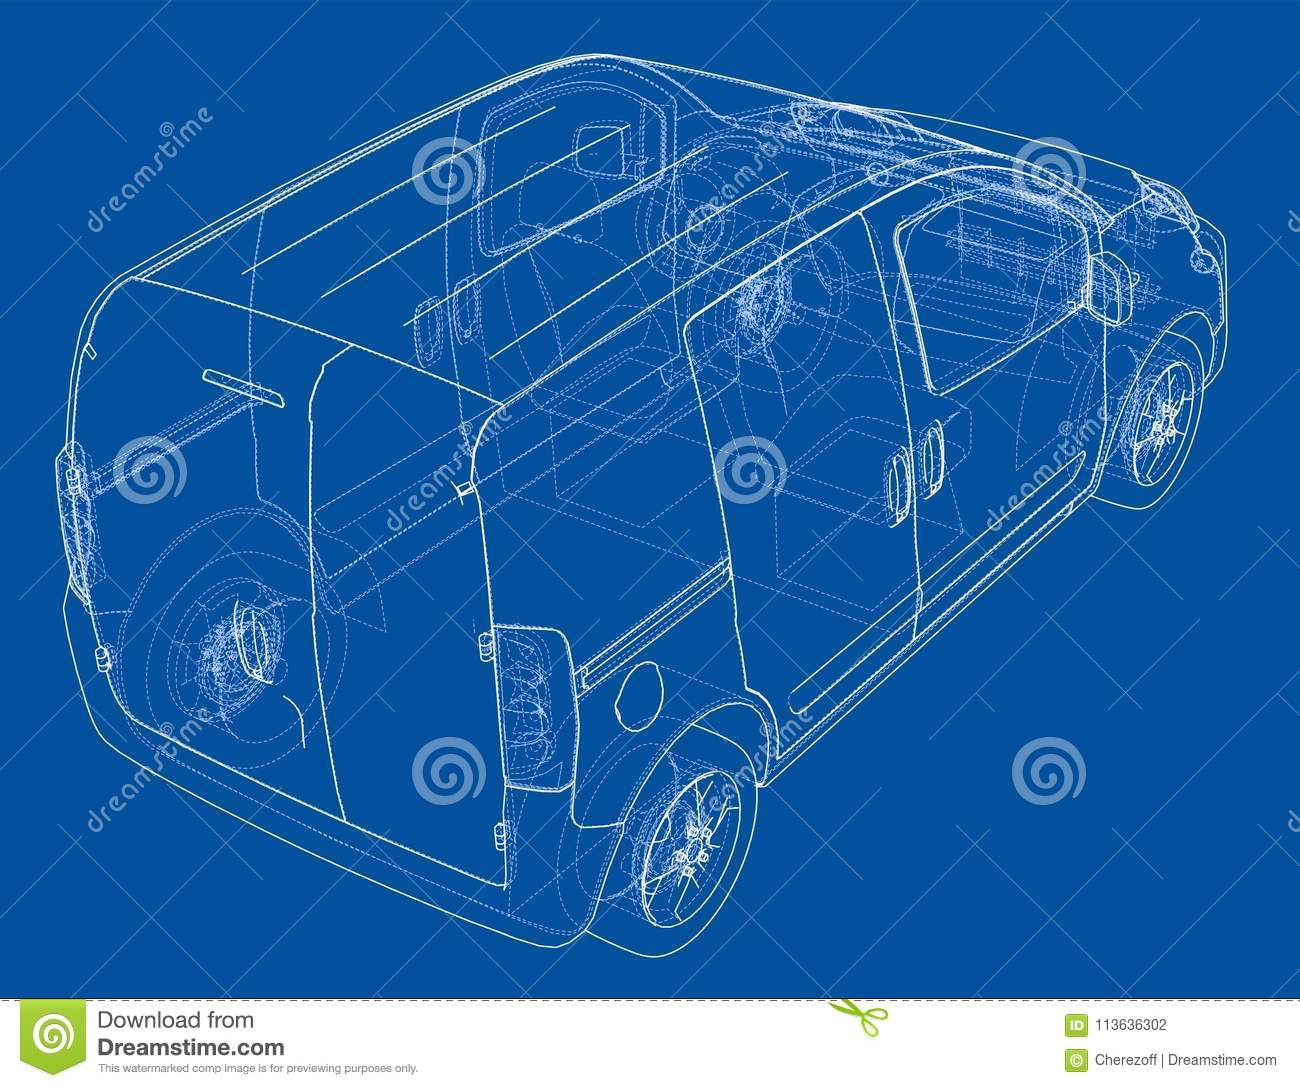 Concept car blueprint stock illustration illustration of outline download concept car blueprint stock illustration illustration of outline 113636302 malvernweather Gallery